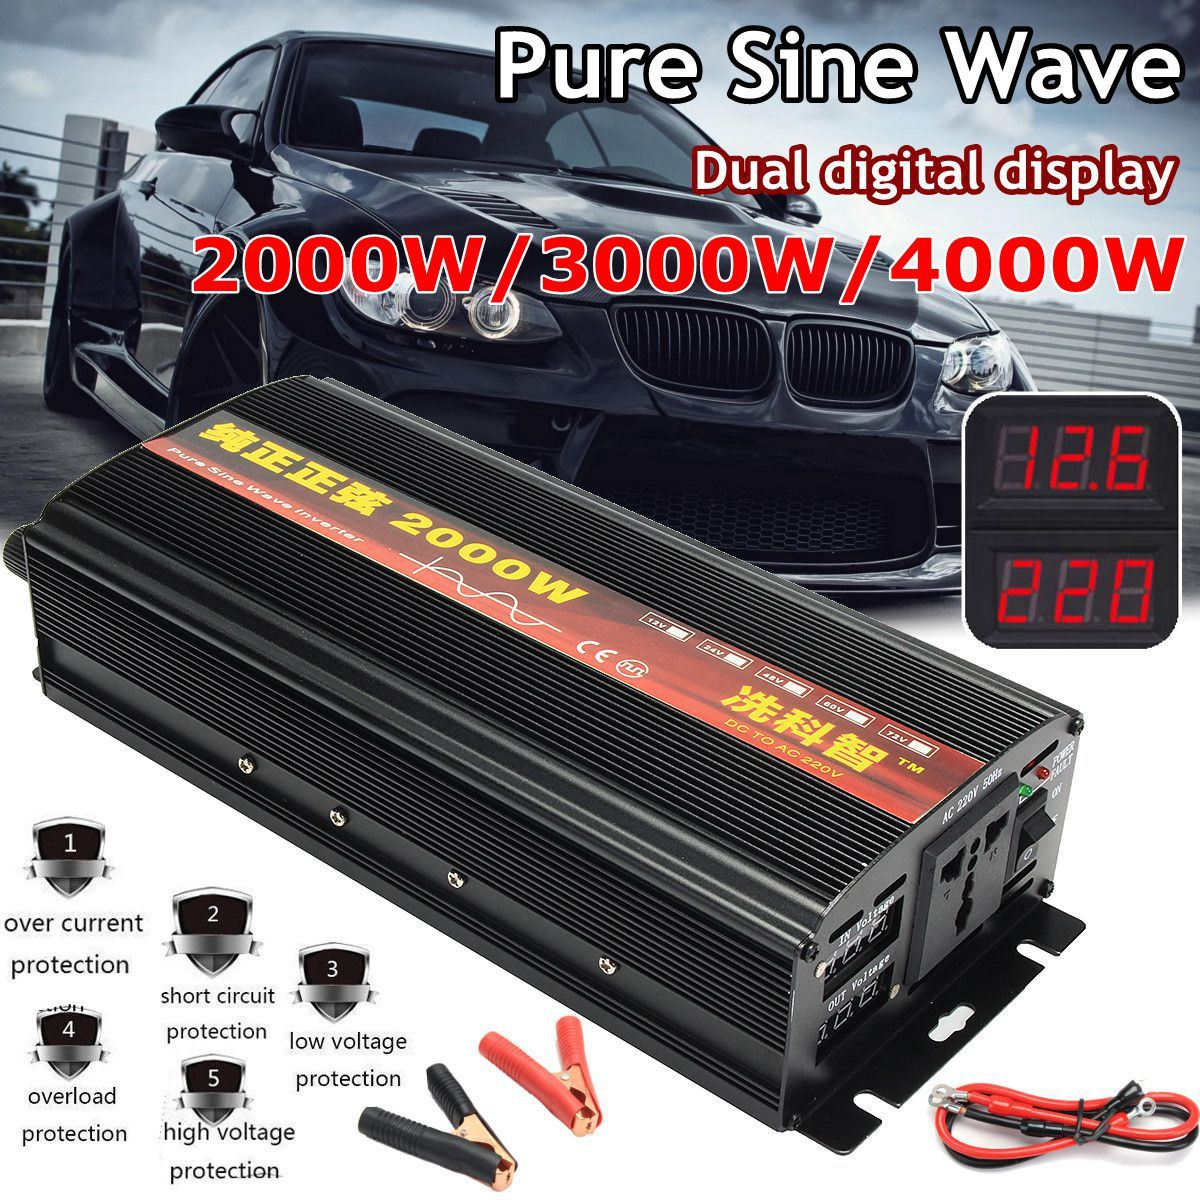 Inverter 12V 220V 2000/3000/4000W Voltage transformer Pure Sine Wave Power Inverter DC12V to AC 220V Converter + 2 LED DisplayInverter 12V 220V 2000/3000/4000W Voltage transformer Pure Sine Wave Power Inverter DC12V to AC 220V Converter + 2 LED Display